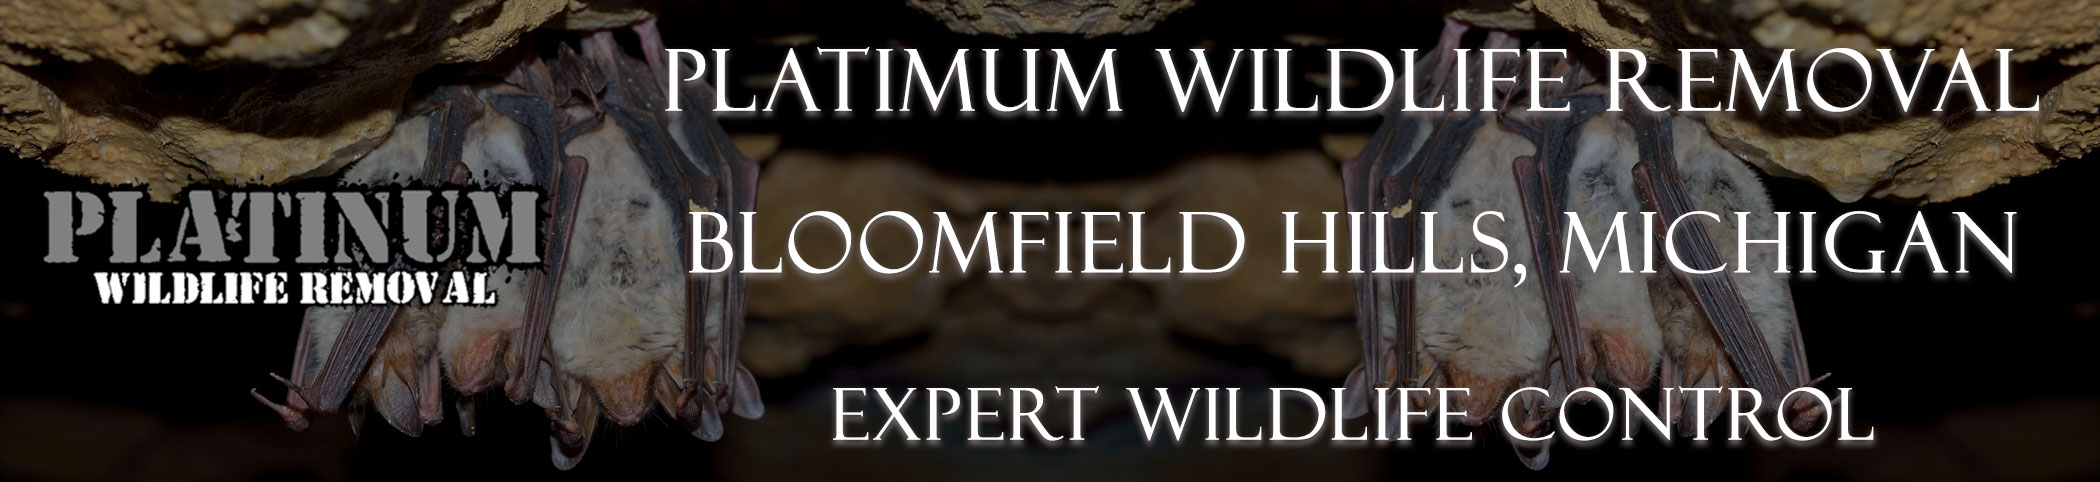 Bloomfield-Hills-Platinum-Wildlife-Removal-michgan